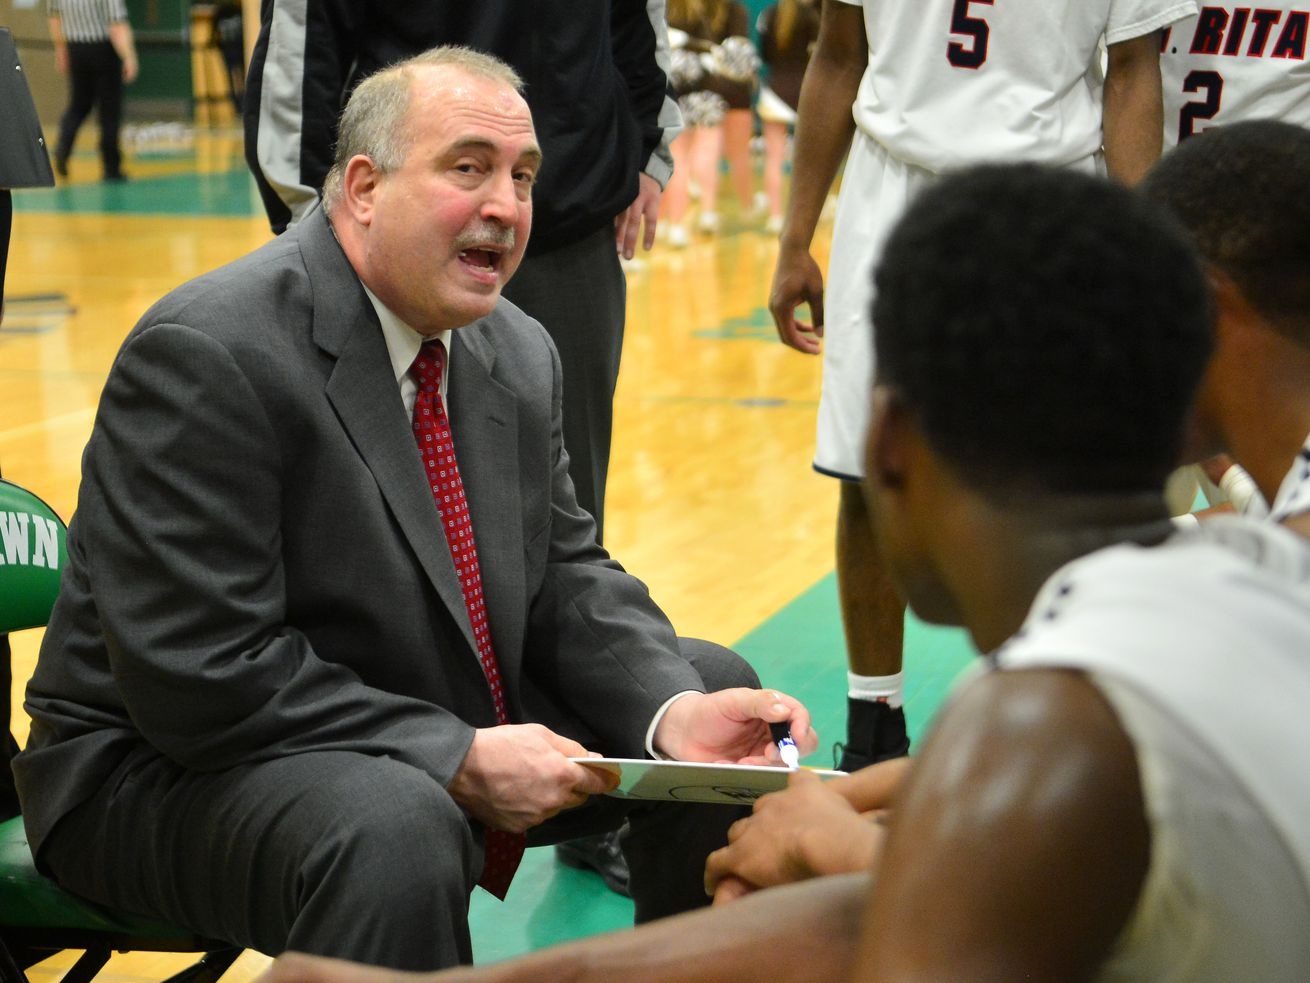 Gary DeCesare, coaching St. Rita, talks strategy during a timeout in the game against Mount Carmel.